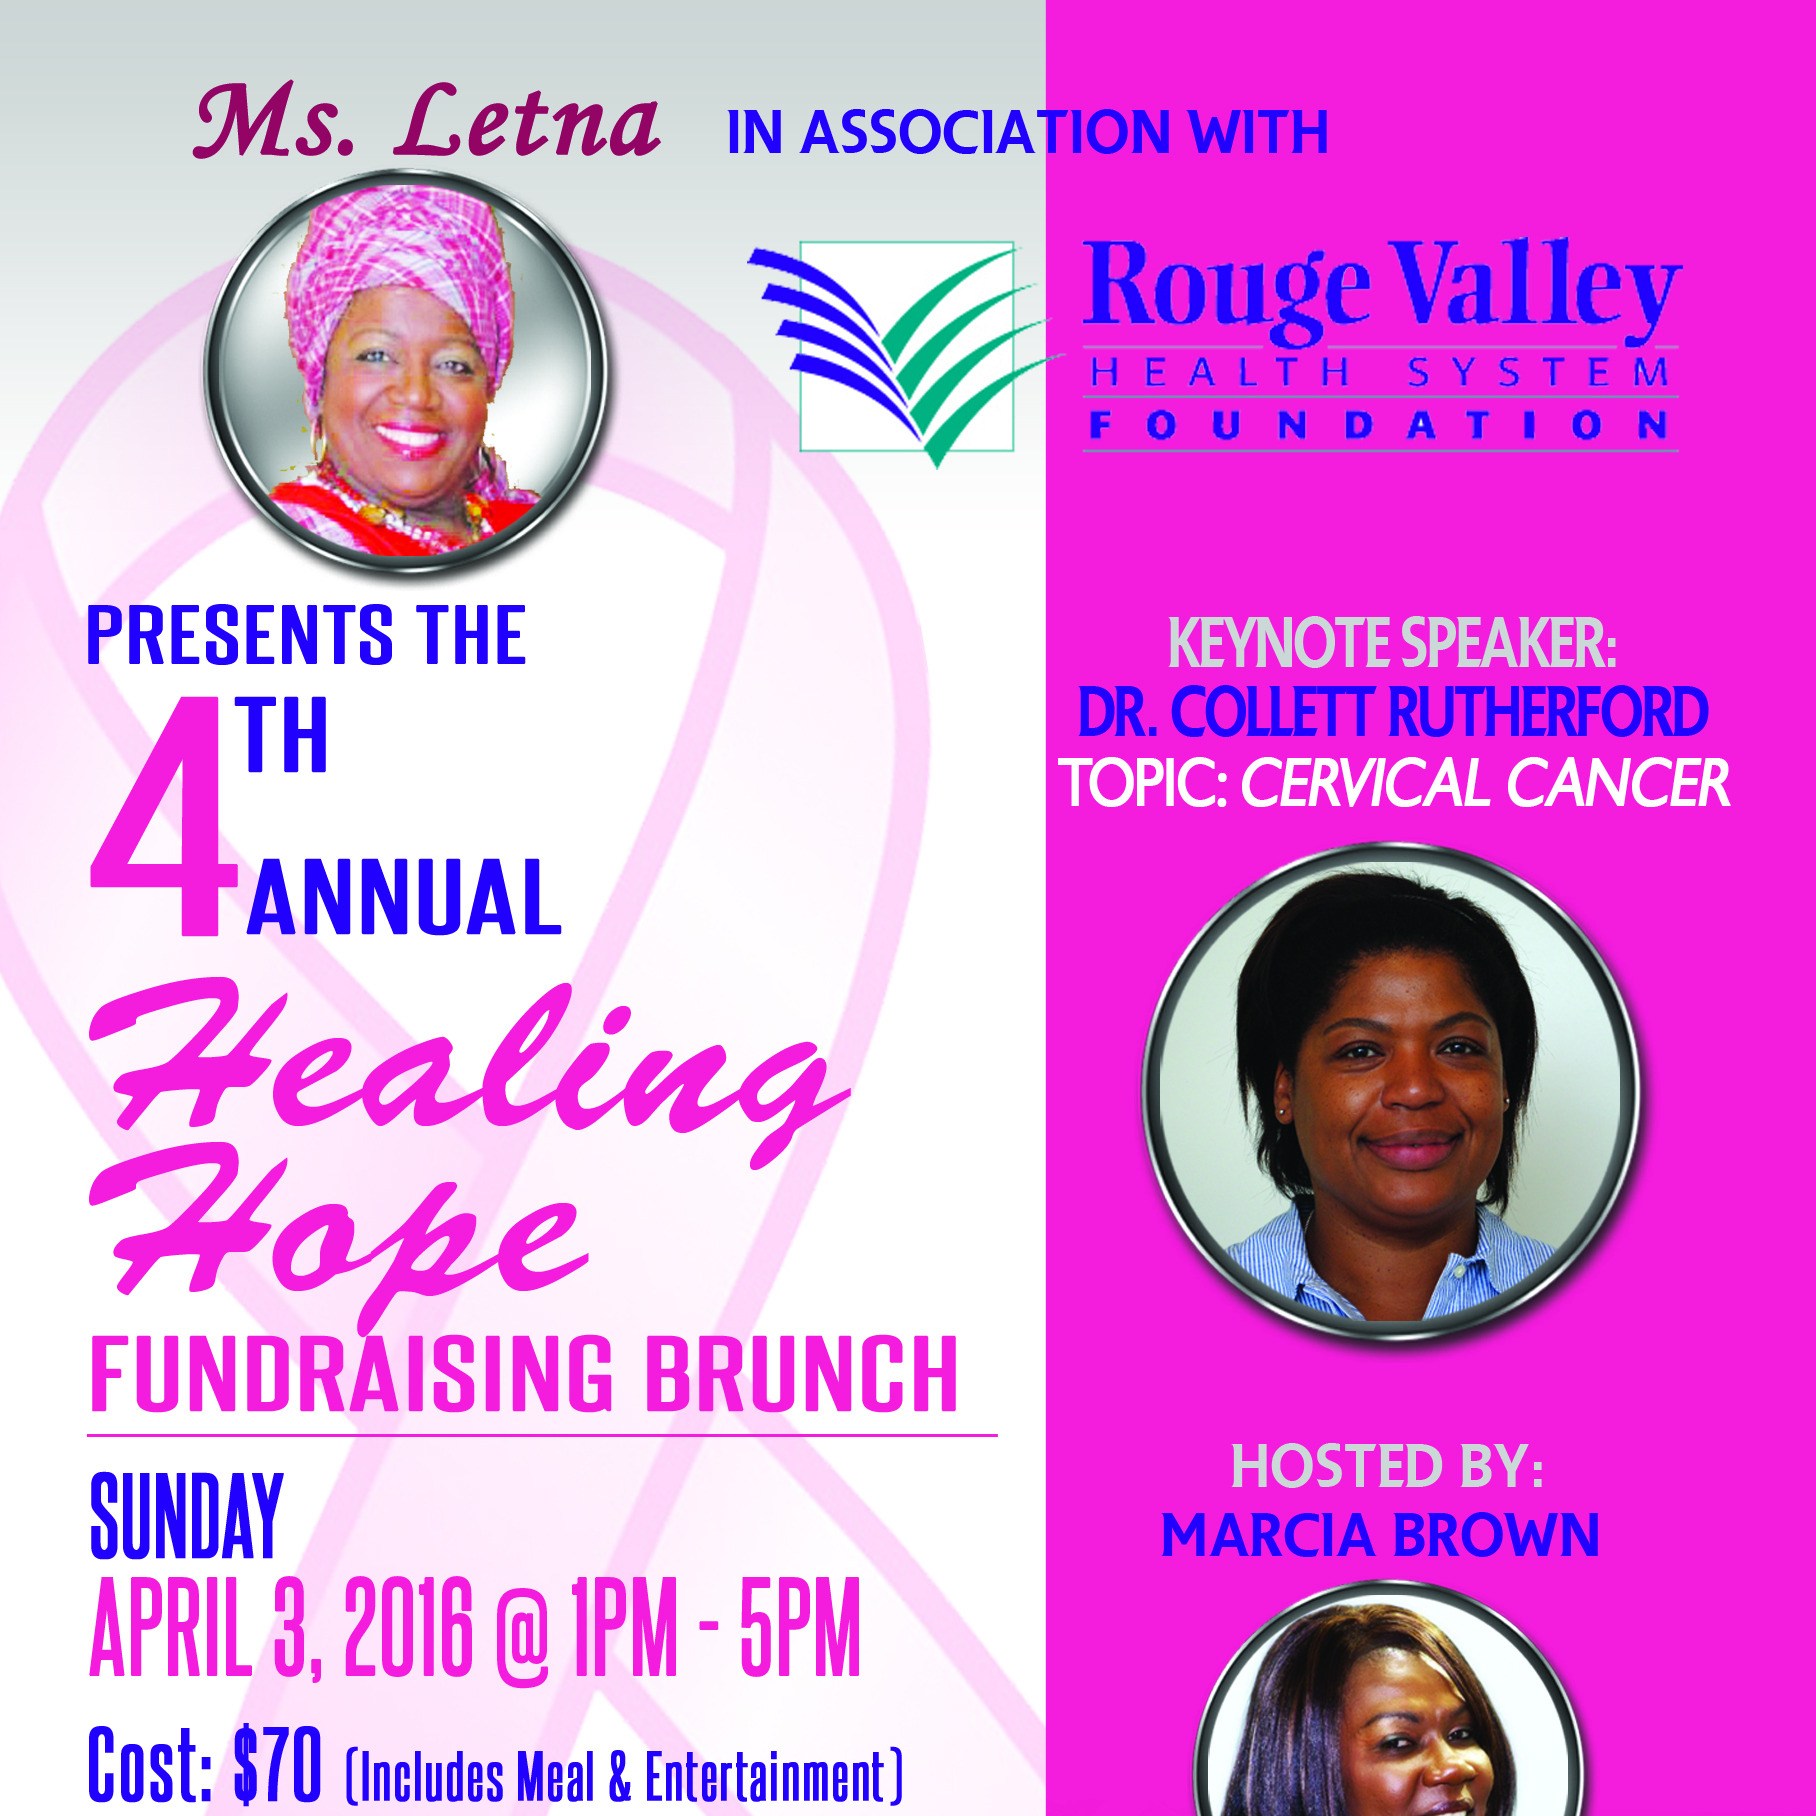 The 4th Annual Healing Hope Fundraising Brunch